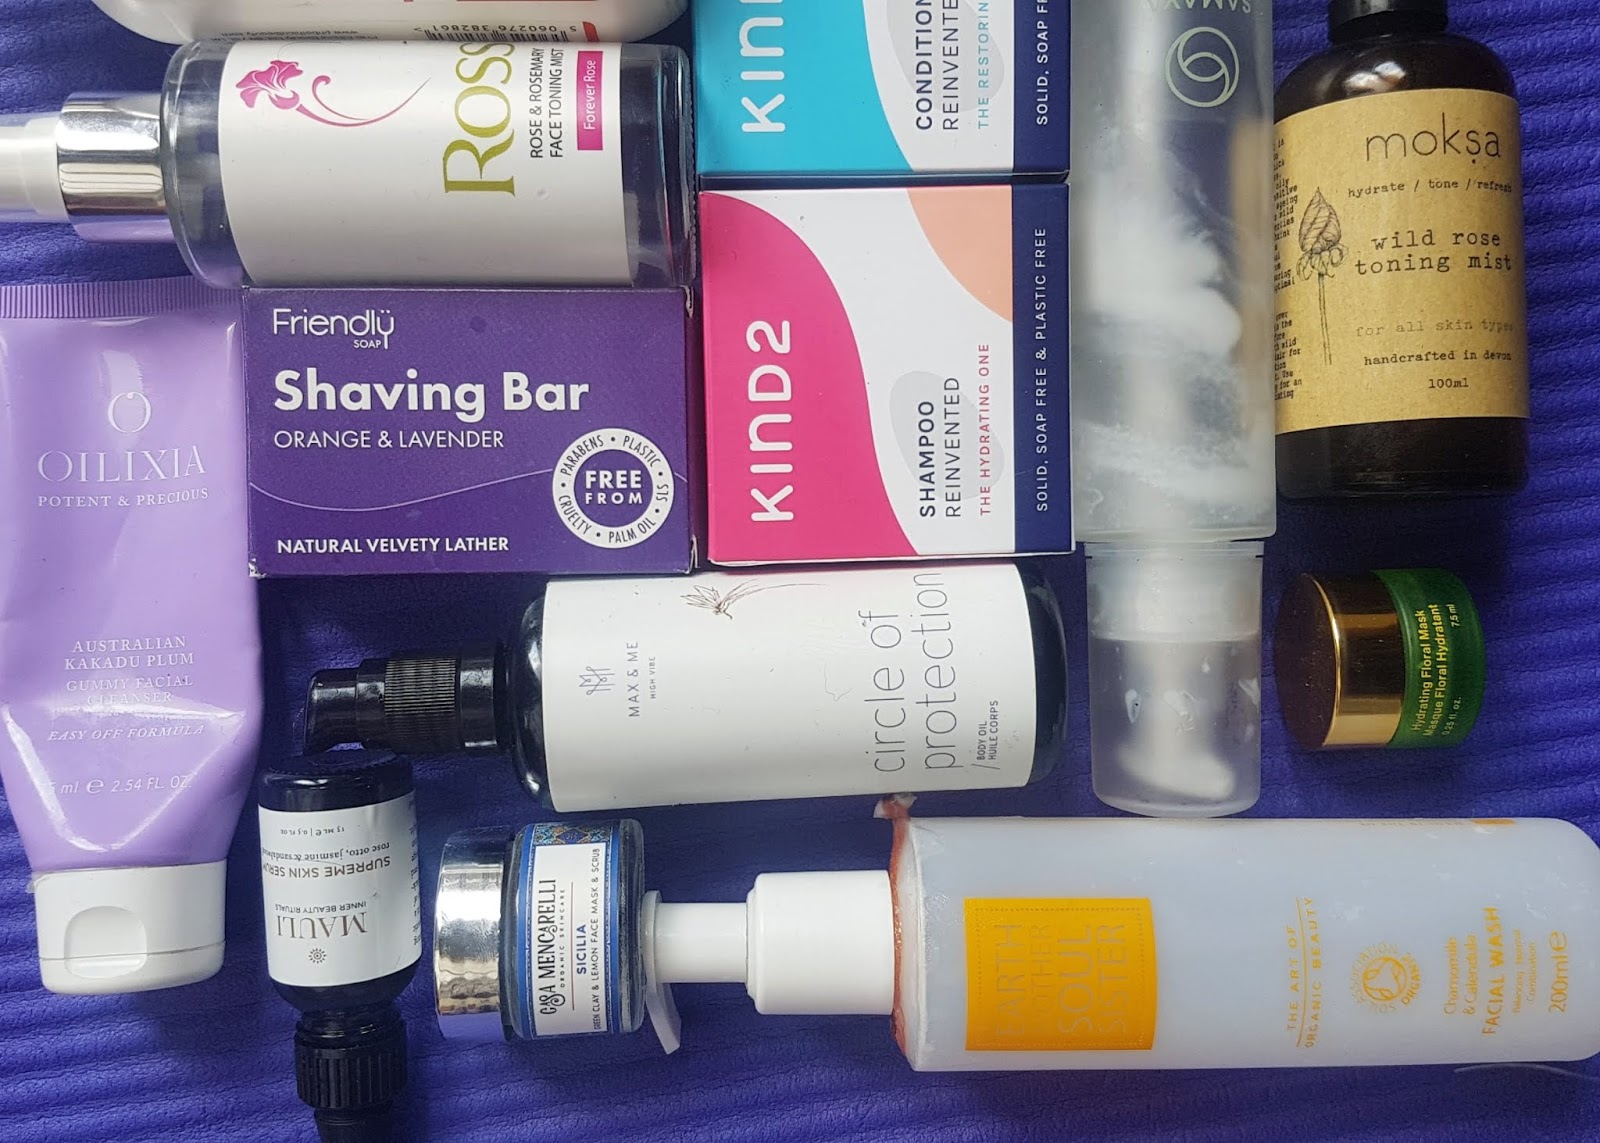 Green beauty and wellbeing Empties Review